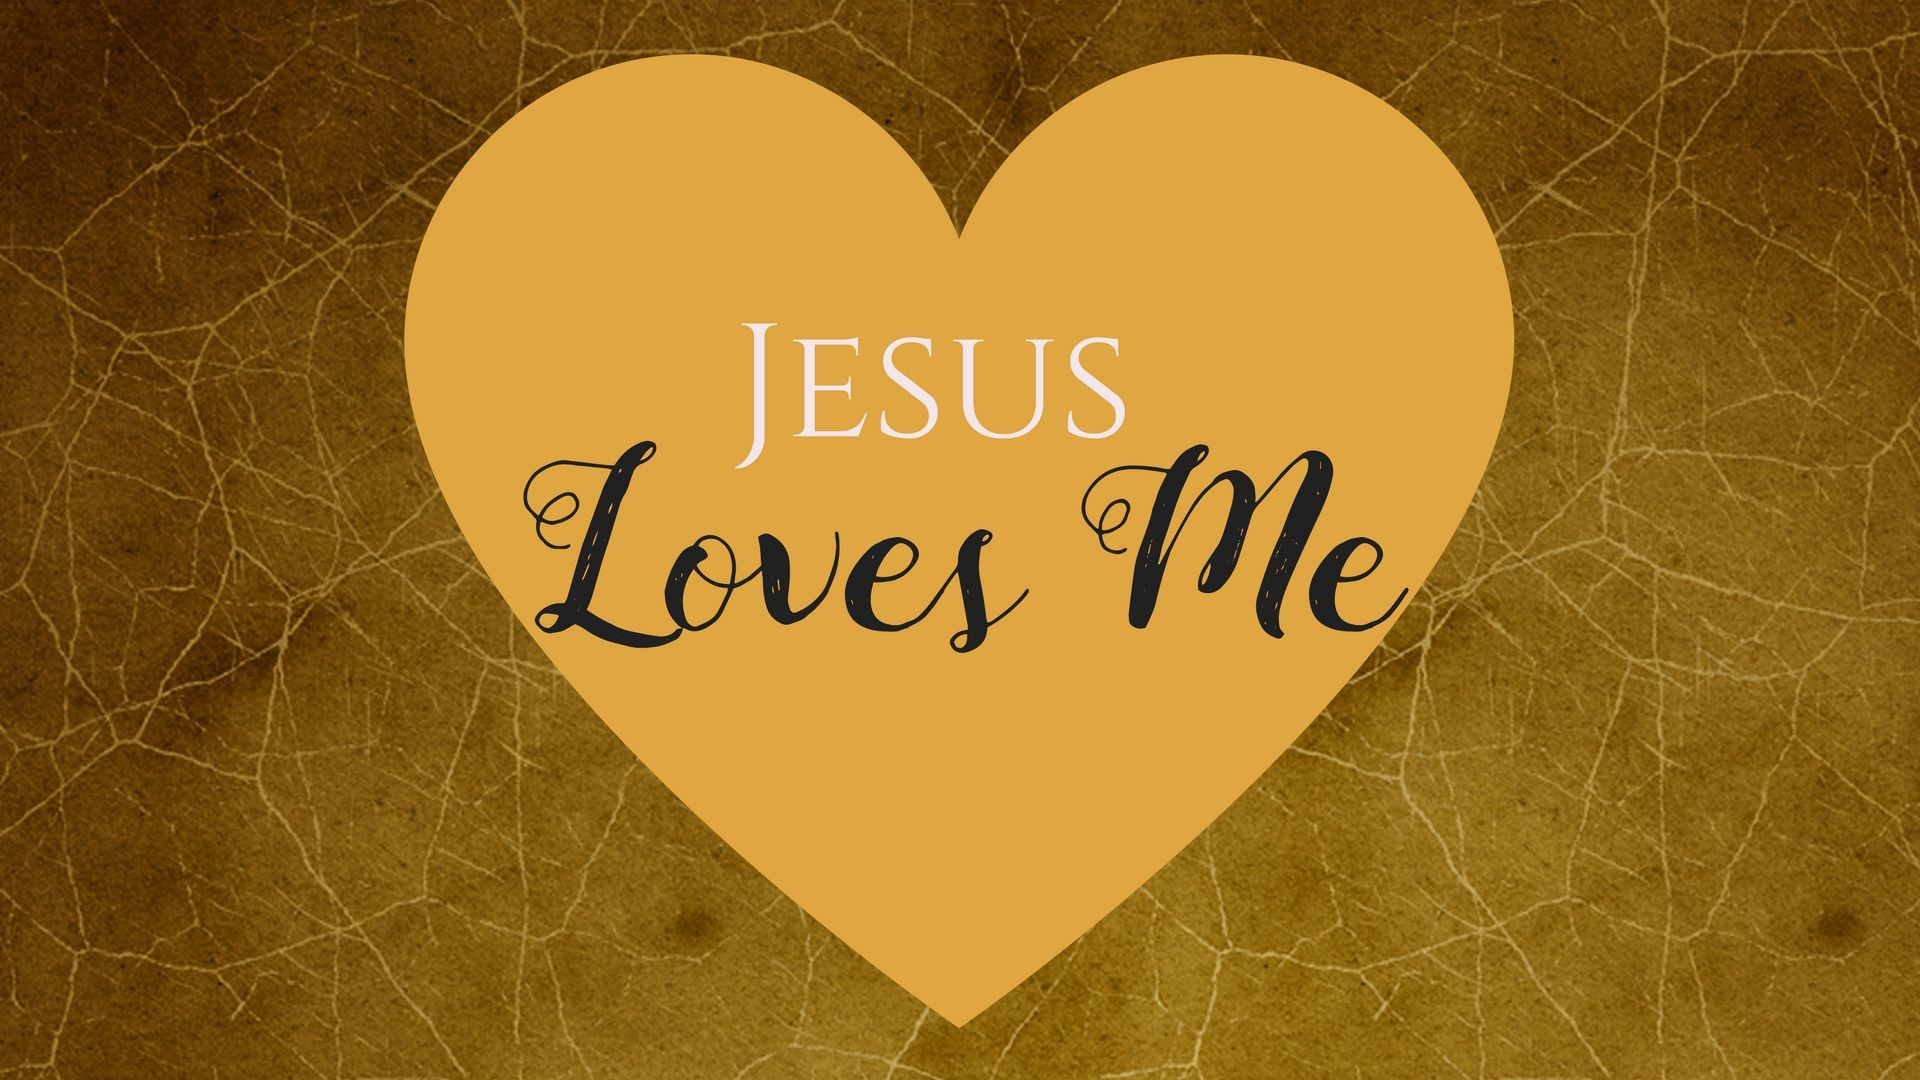 Jesus Themed Christian Wallpapers